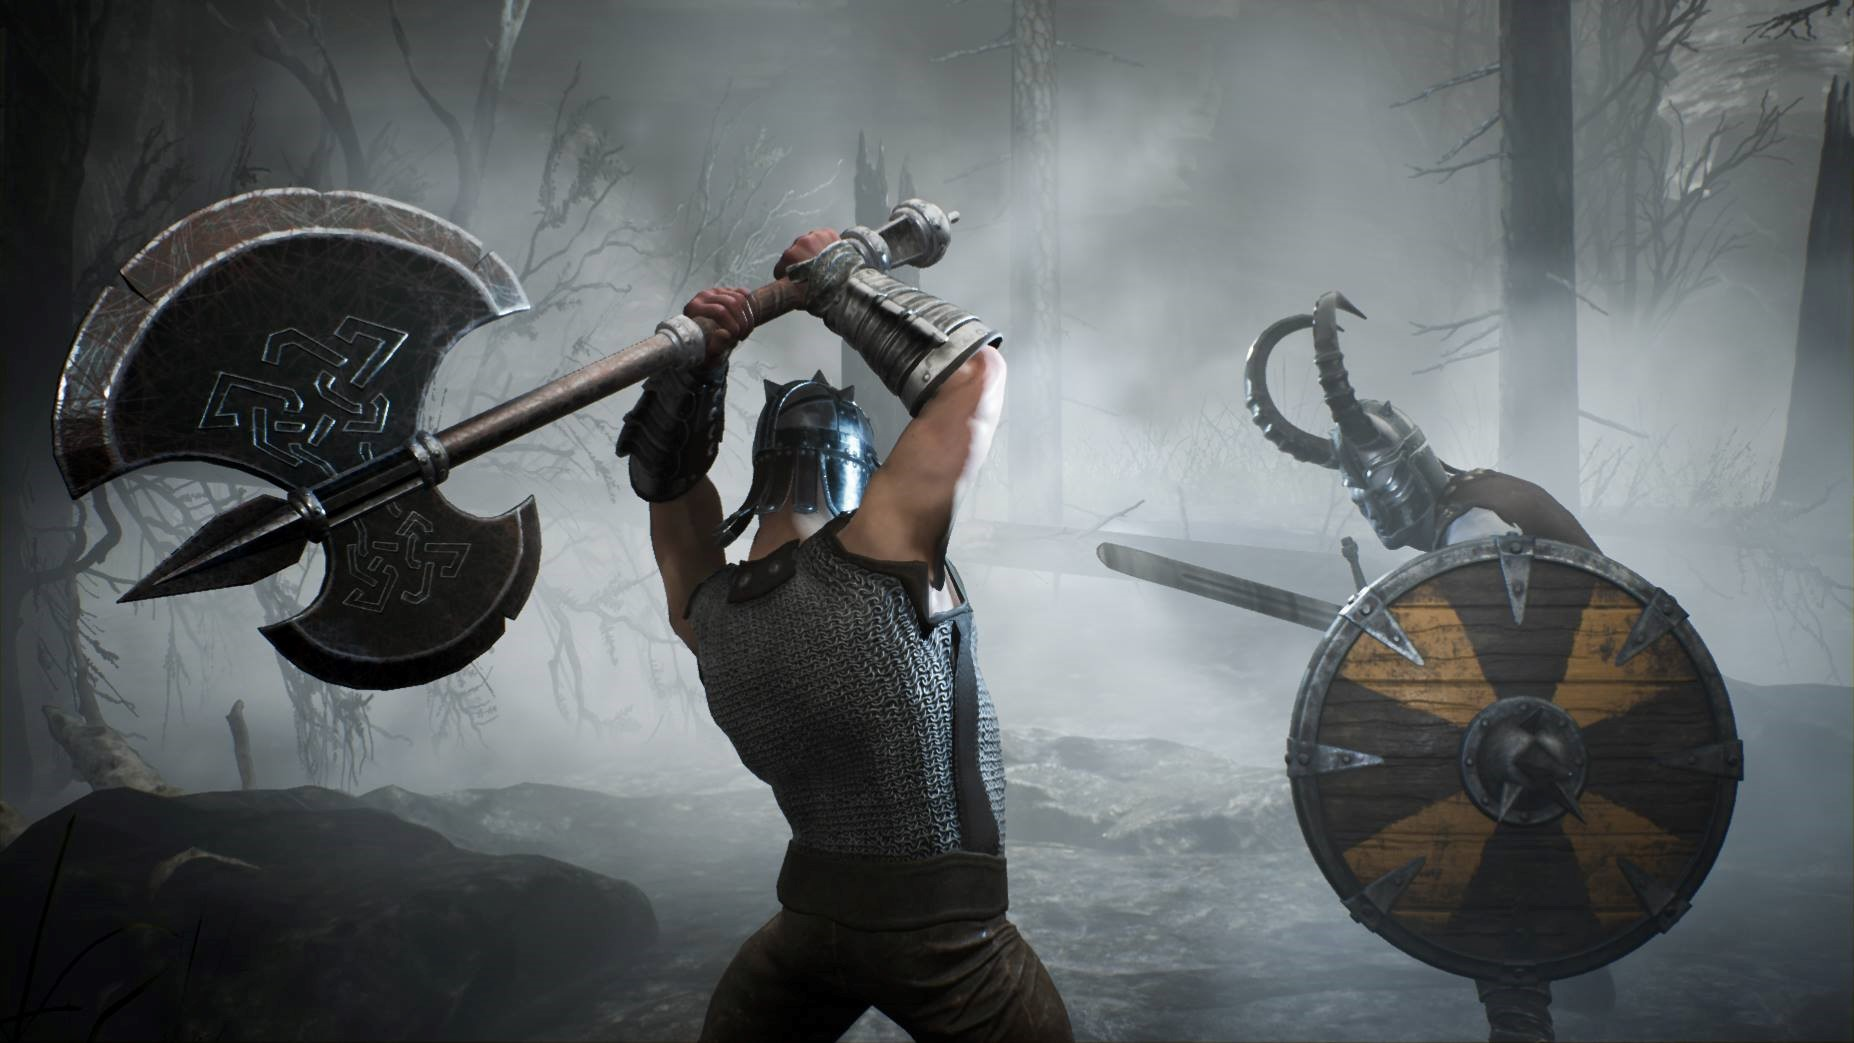 a man swinging an axe at a on guard undead soldier